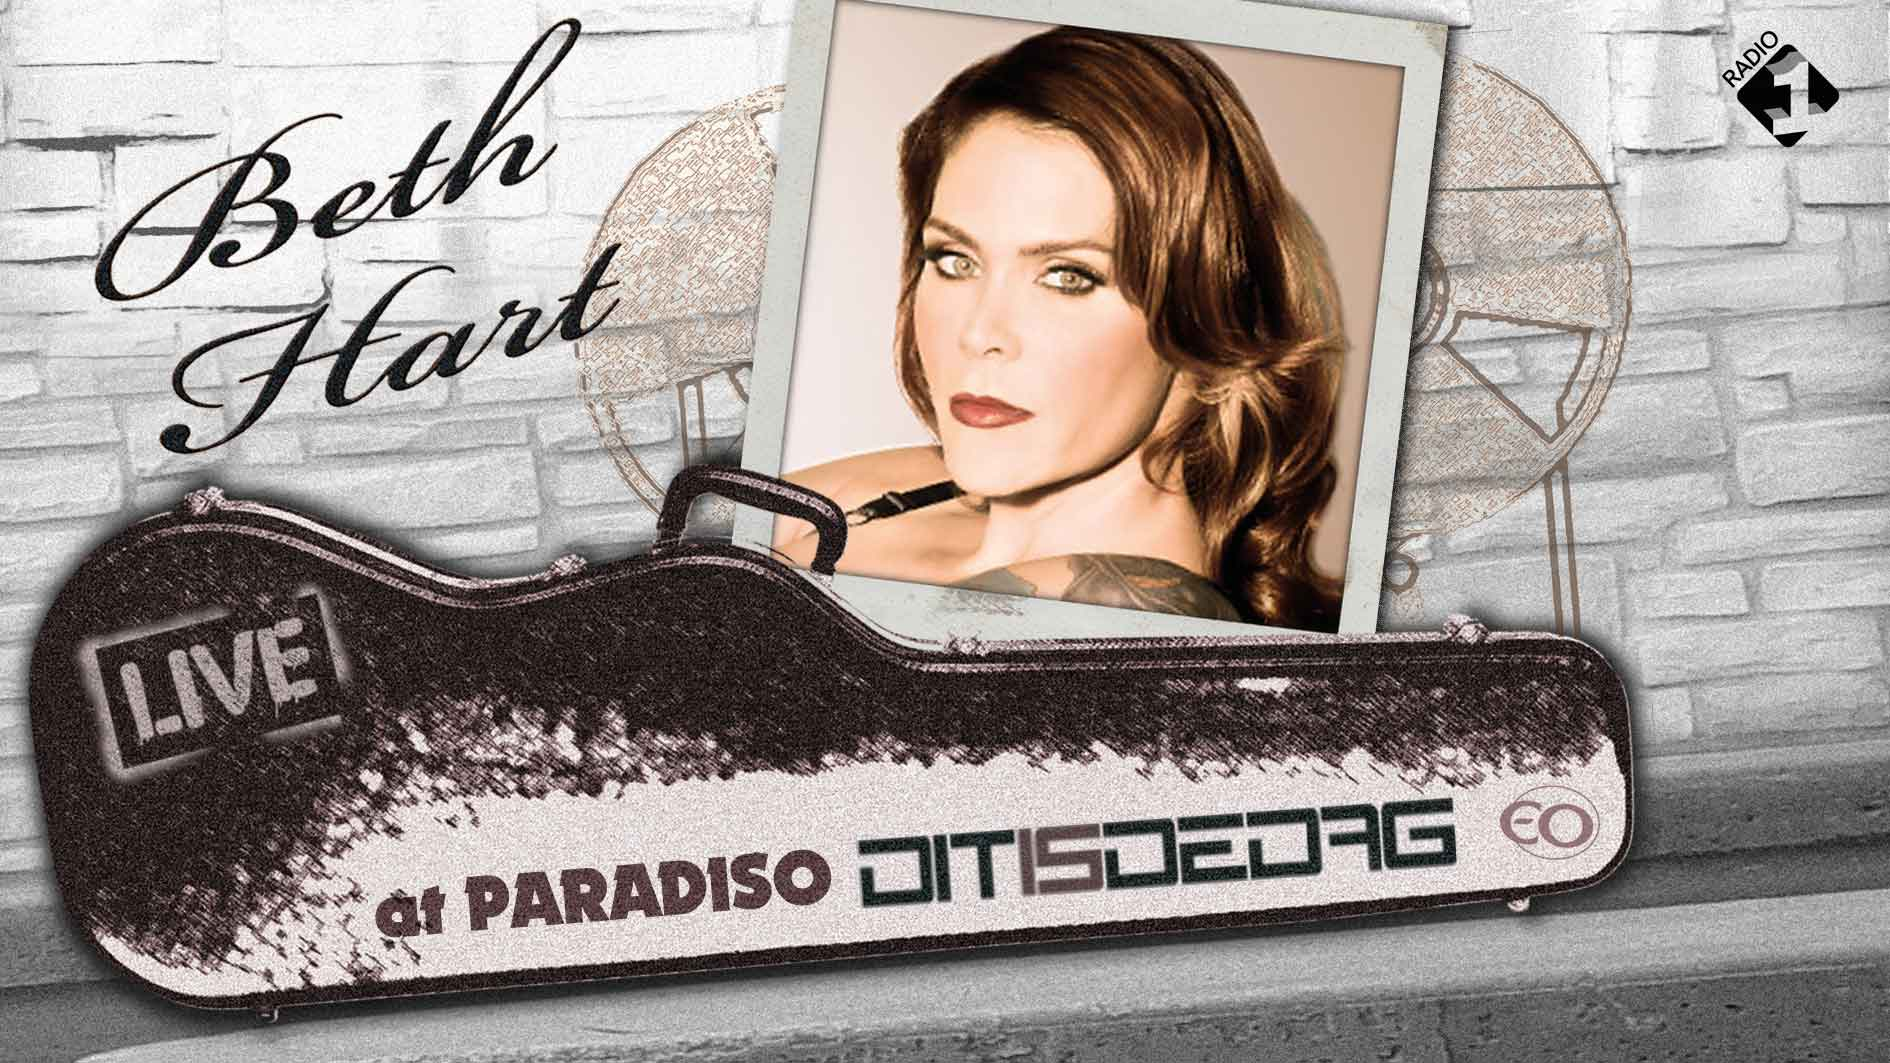 Beth Hart on Radio 1 NL